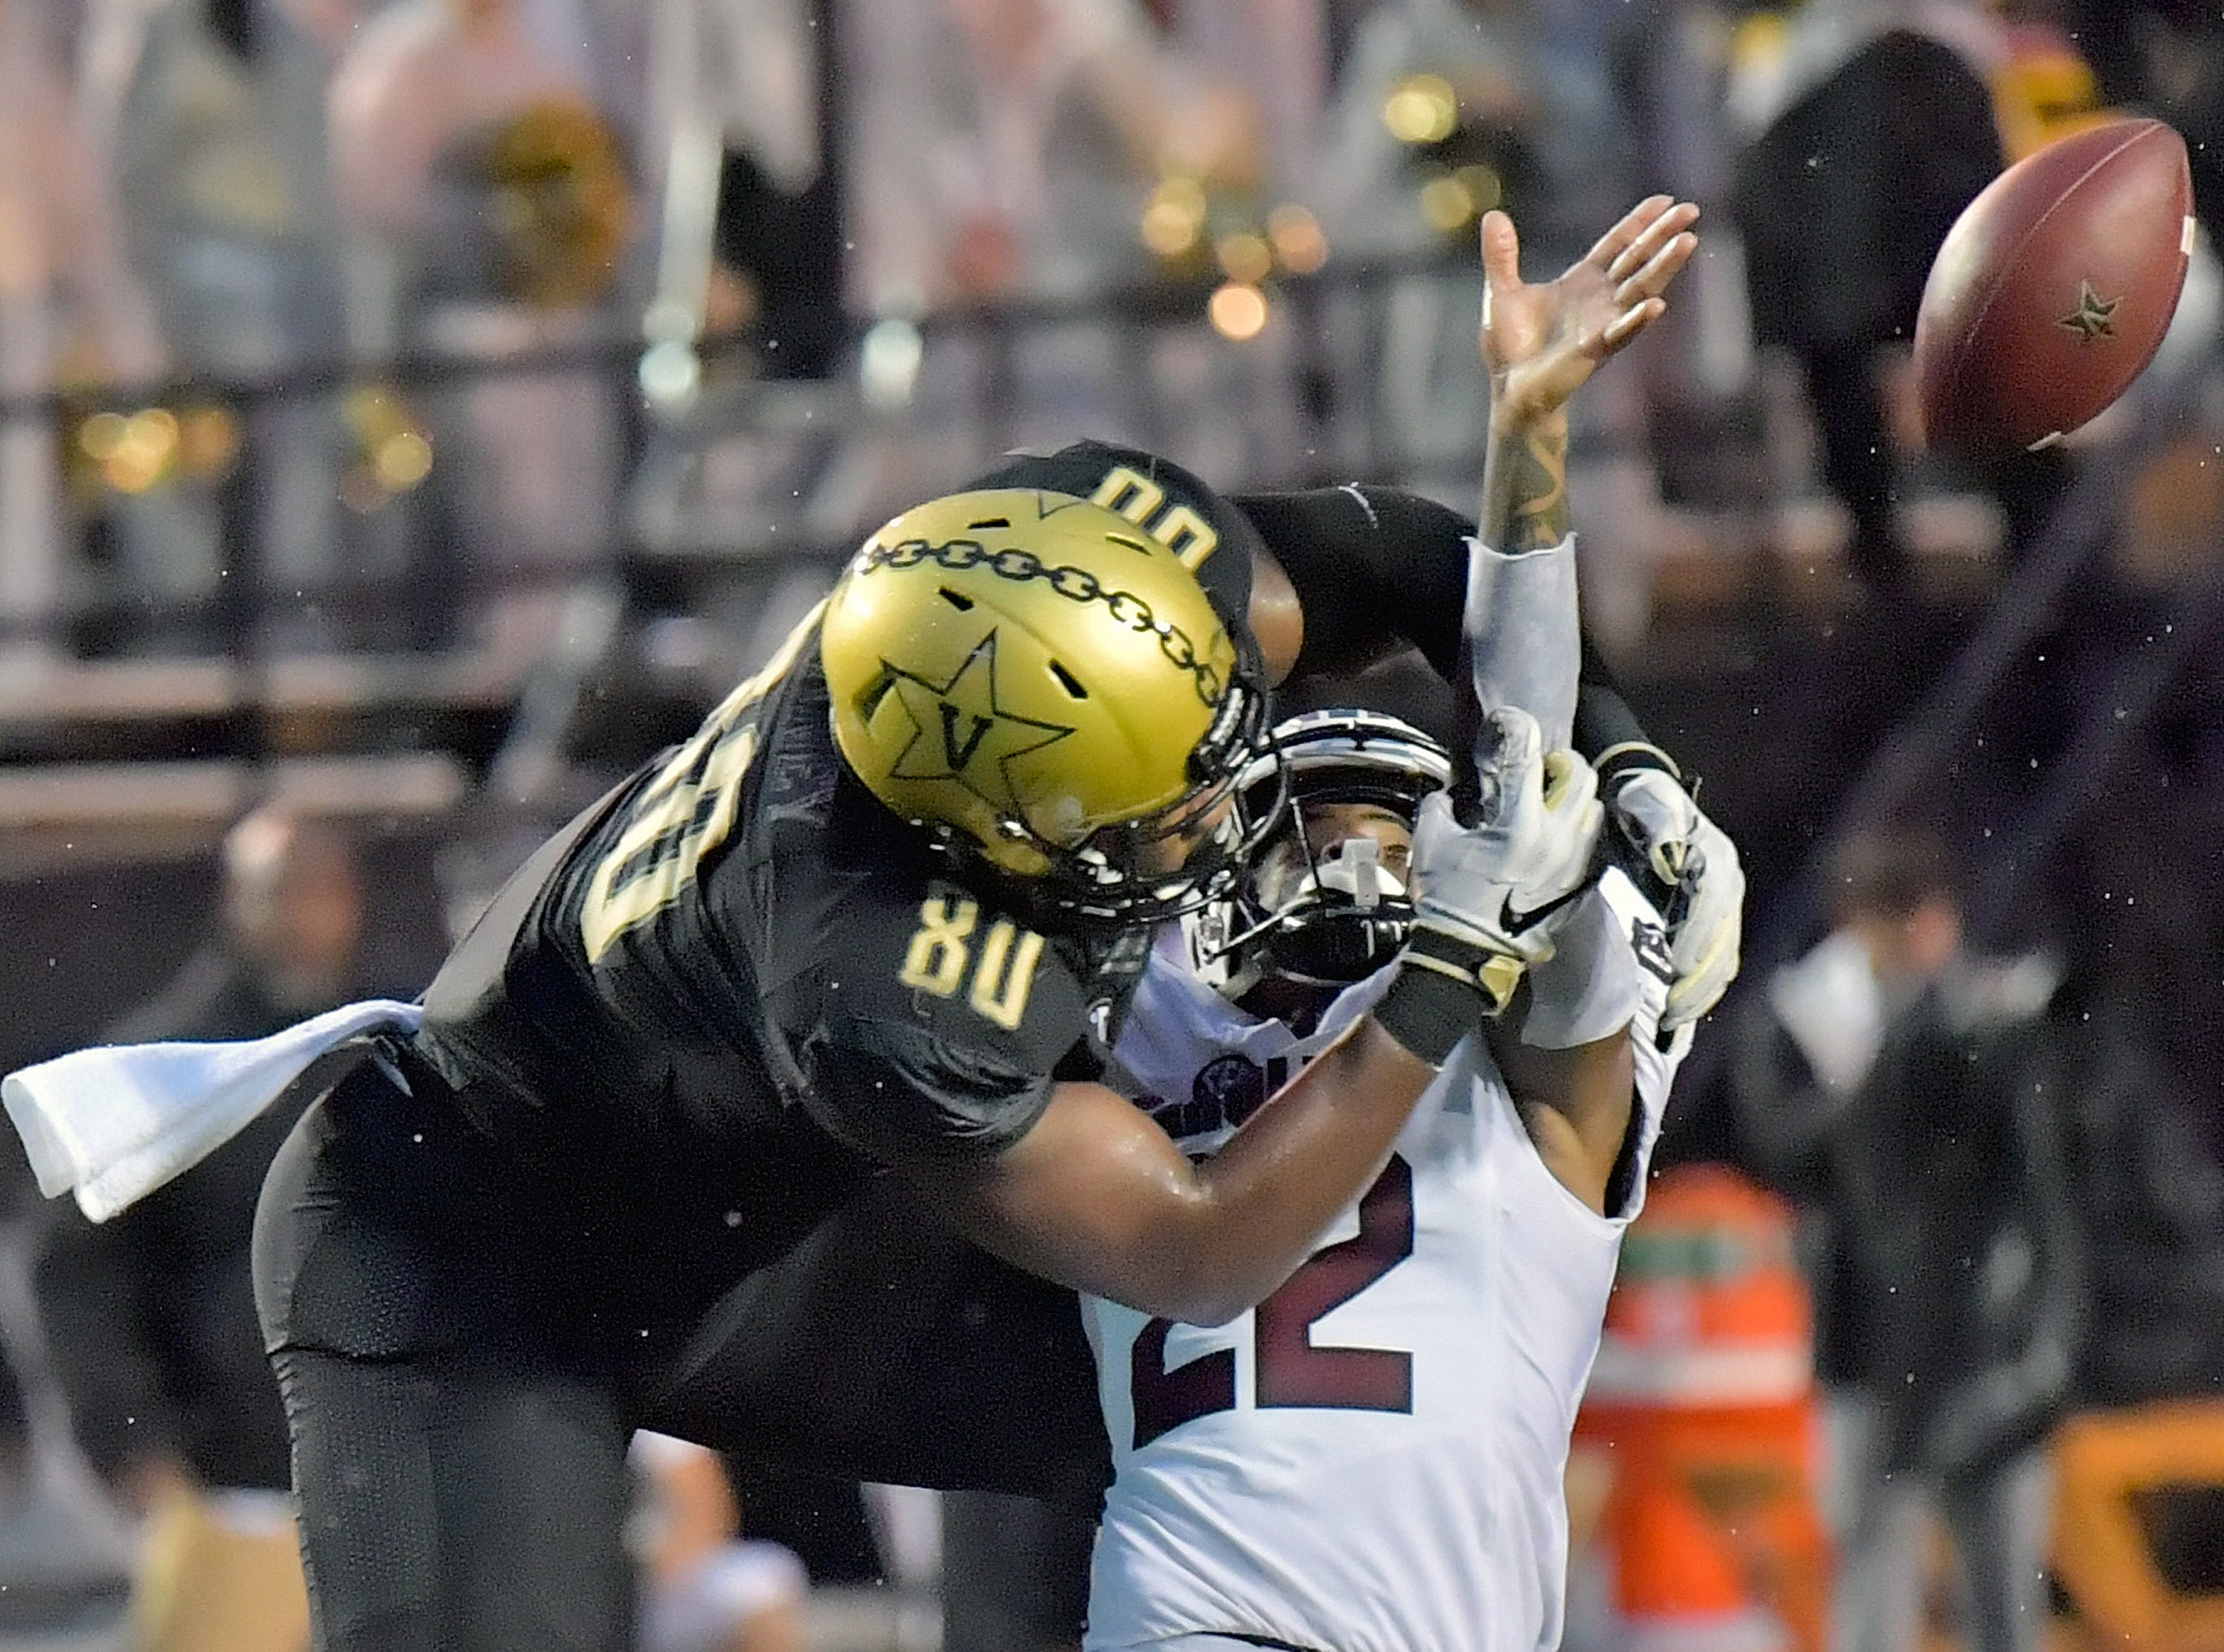 South Carolina Gamecocks defensive back Steven Montac (22) breaks up a pass intended for Vanderbilt Commodores tight end Jared Pinkney (80) during the second half at Vanderbilt Stadium.